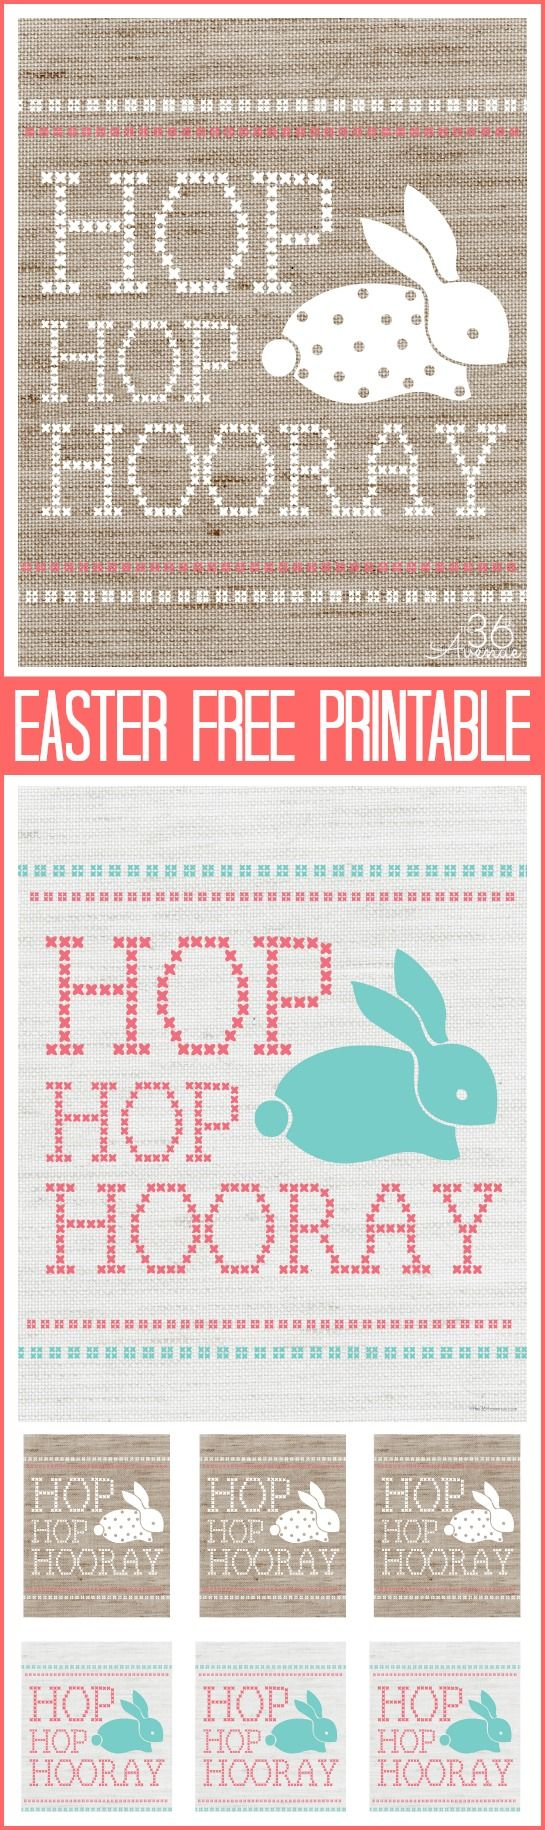 Adorable FREE Easter Printables @The 36th Avenue .com #easter #printable